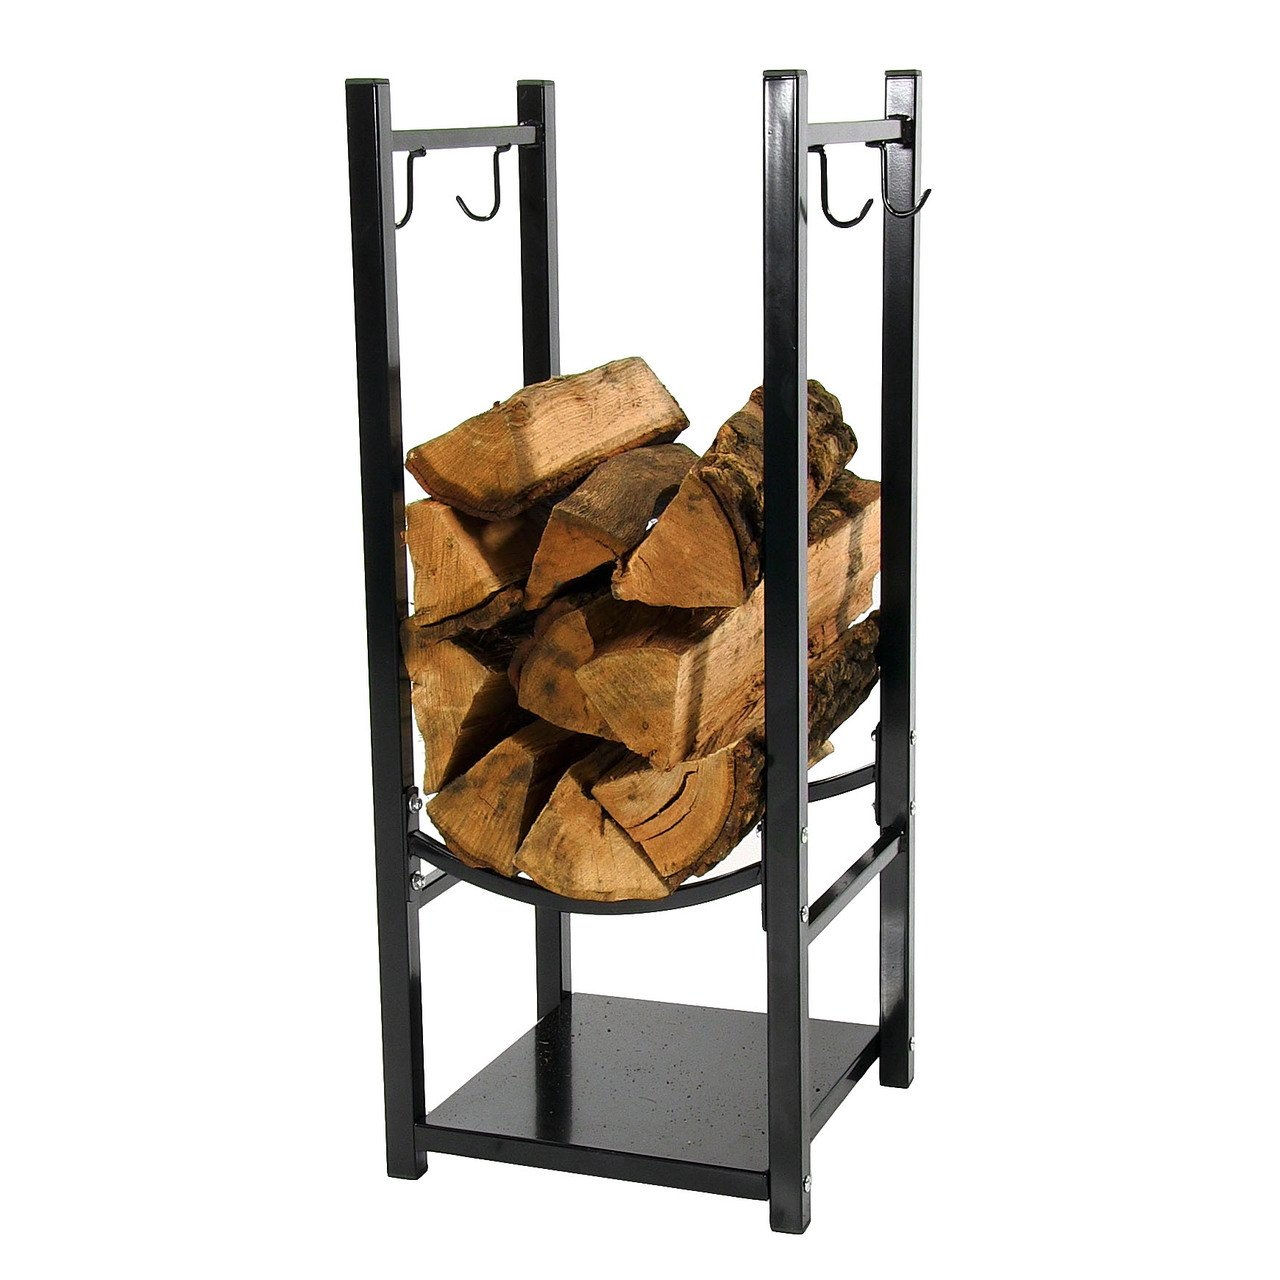 Sunnydaze 13-Inch Firewood Log Rack with Tool Holders – Indoor or Outdoor Black Powder-Coated Steel Wood Storage Stacker – Metal Holder for Logs for Fireplace, Stove and Fire Pit